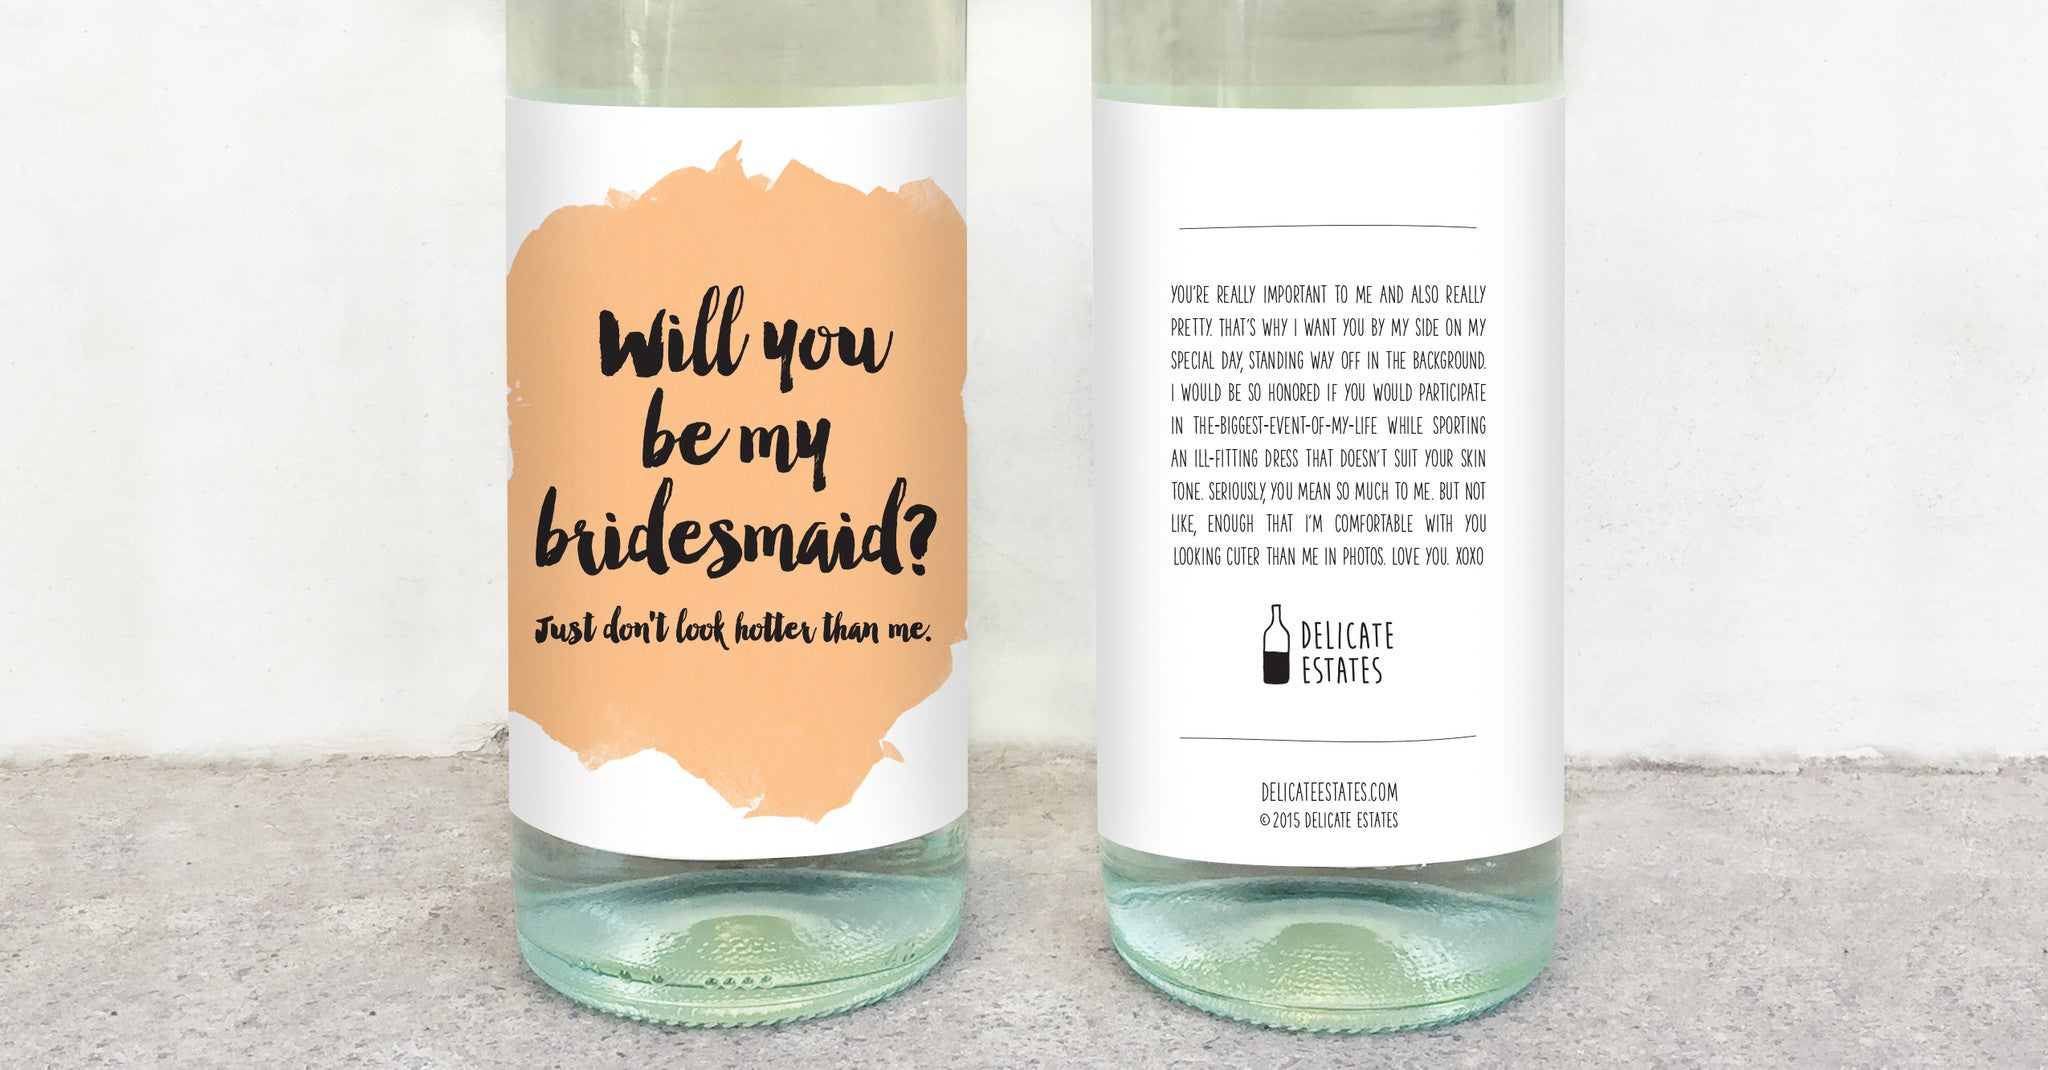 will you be my bridesmaid just don't look hotter than me wine label greeting card delicate estates